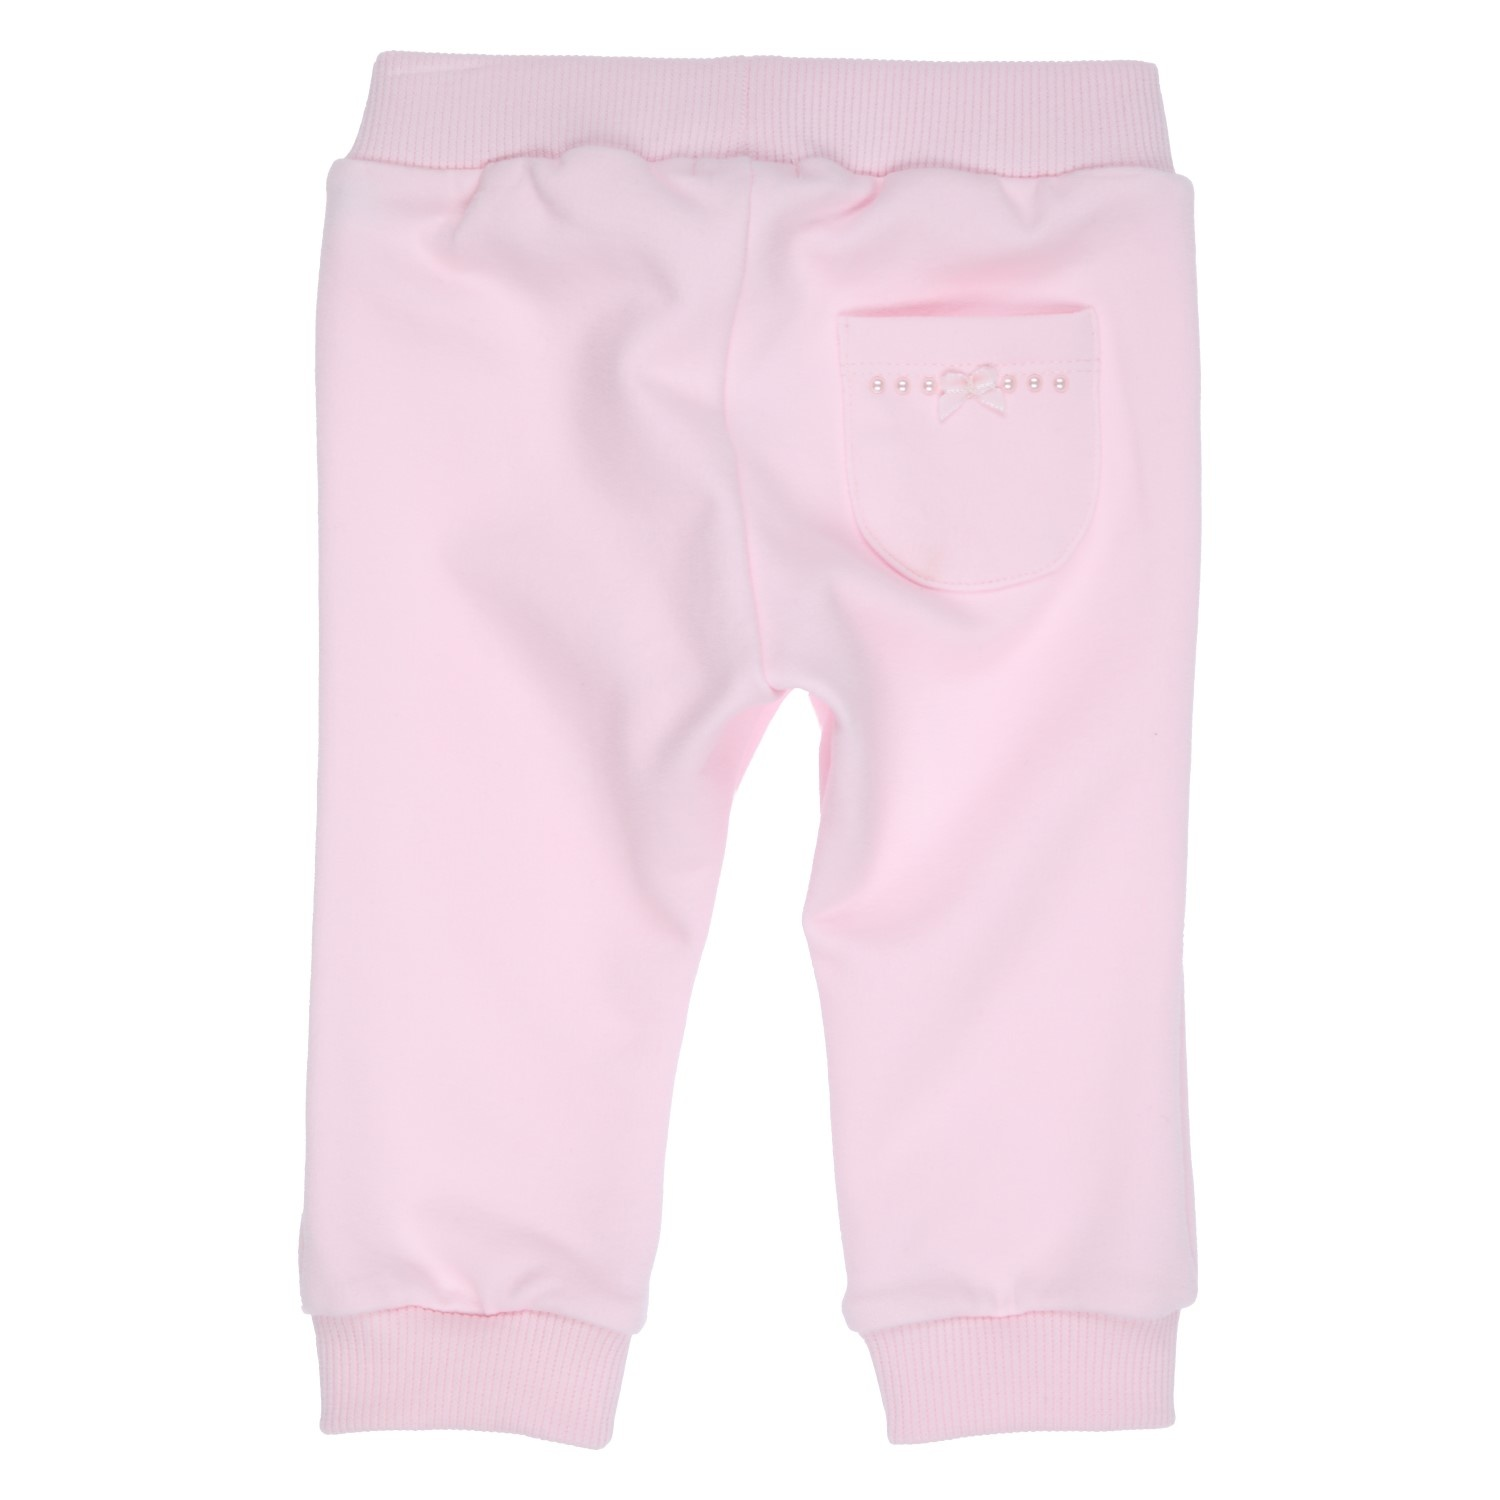 Gymp Gymp Pink Joggers - 1799